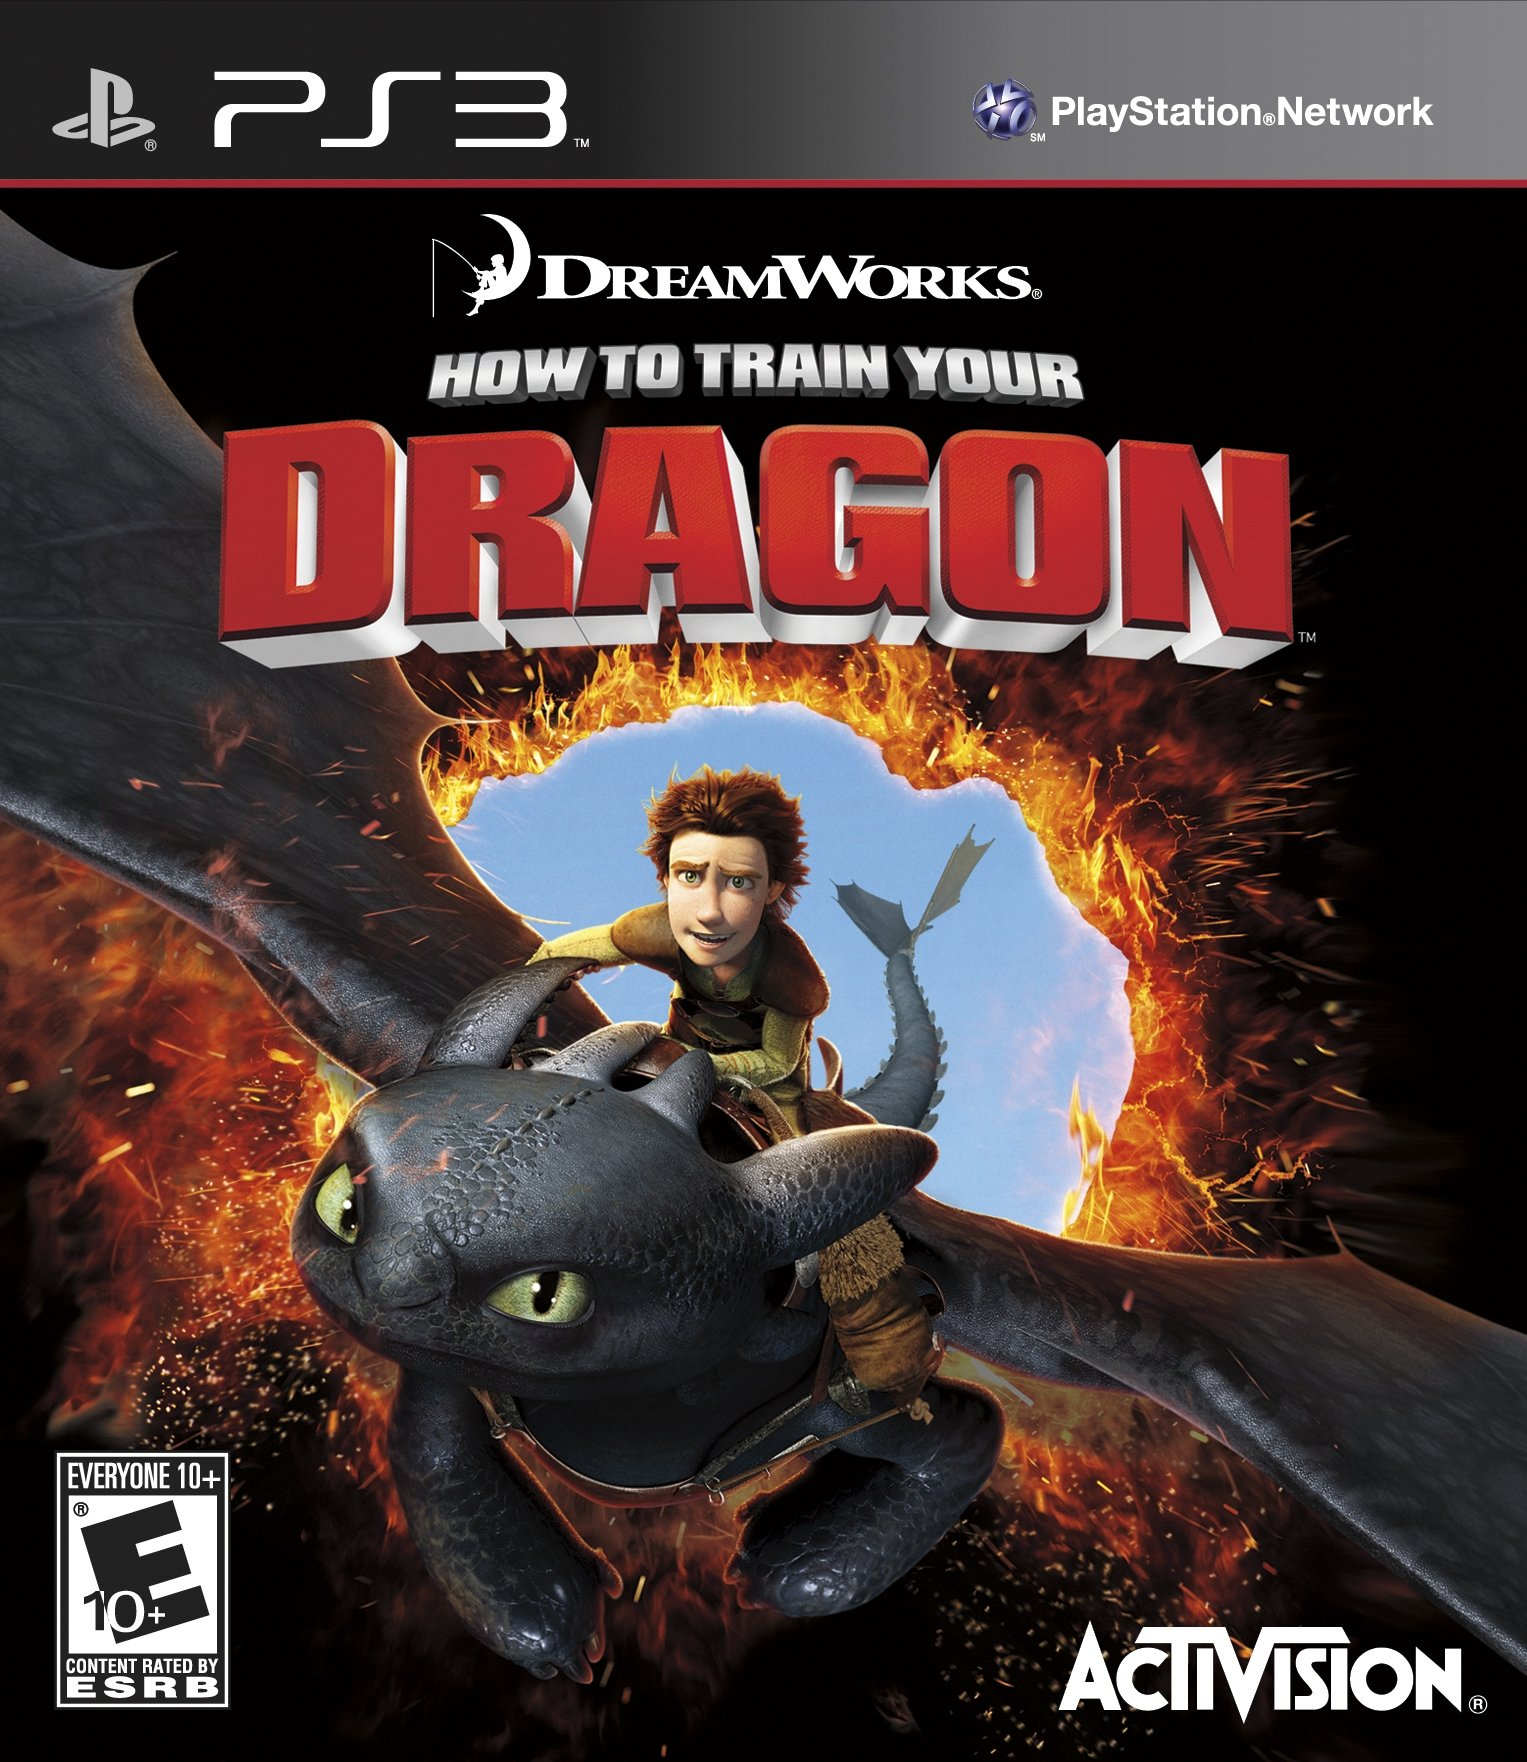 How to Train Your Dragon - Playstation 3